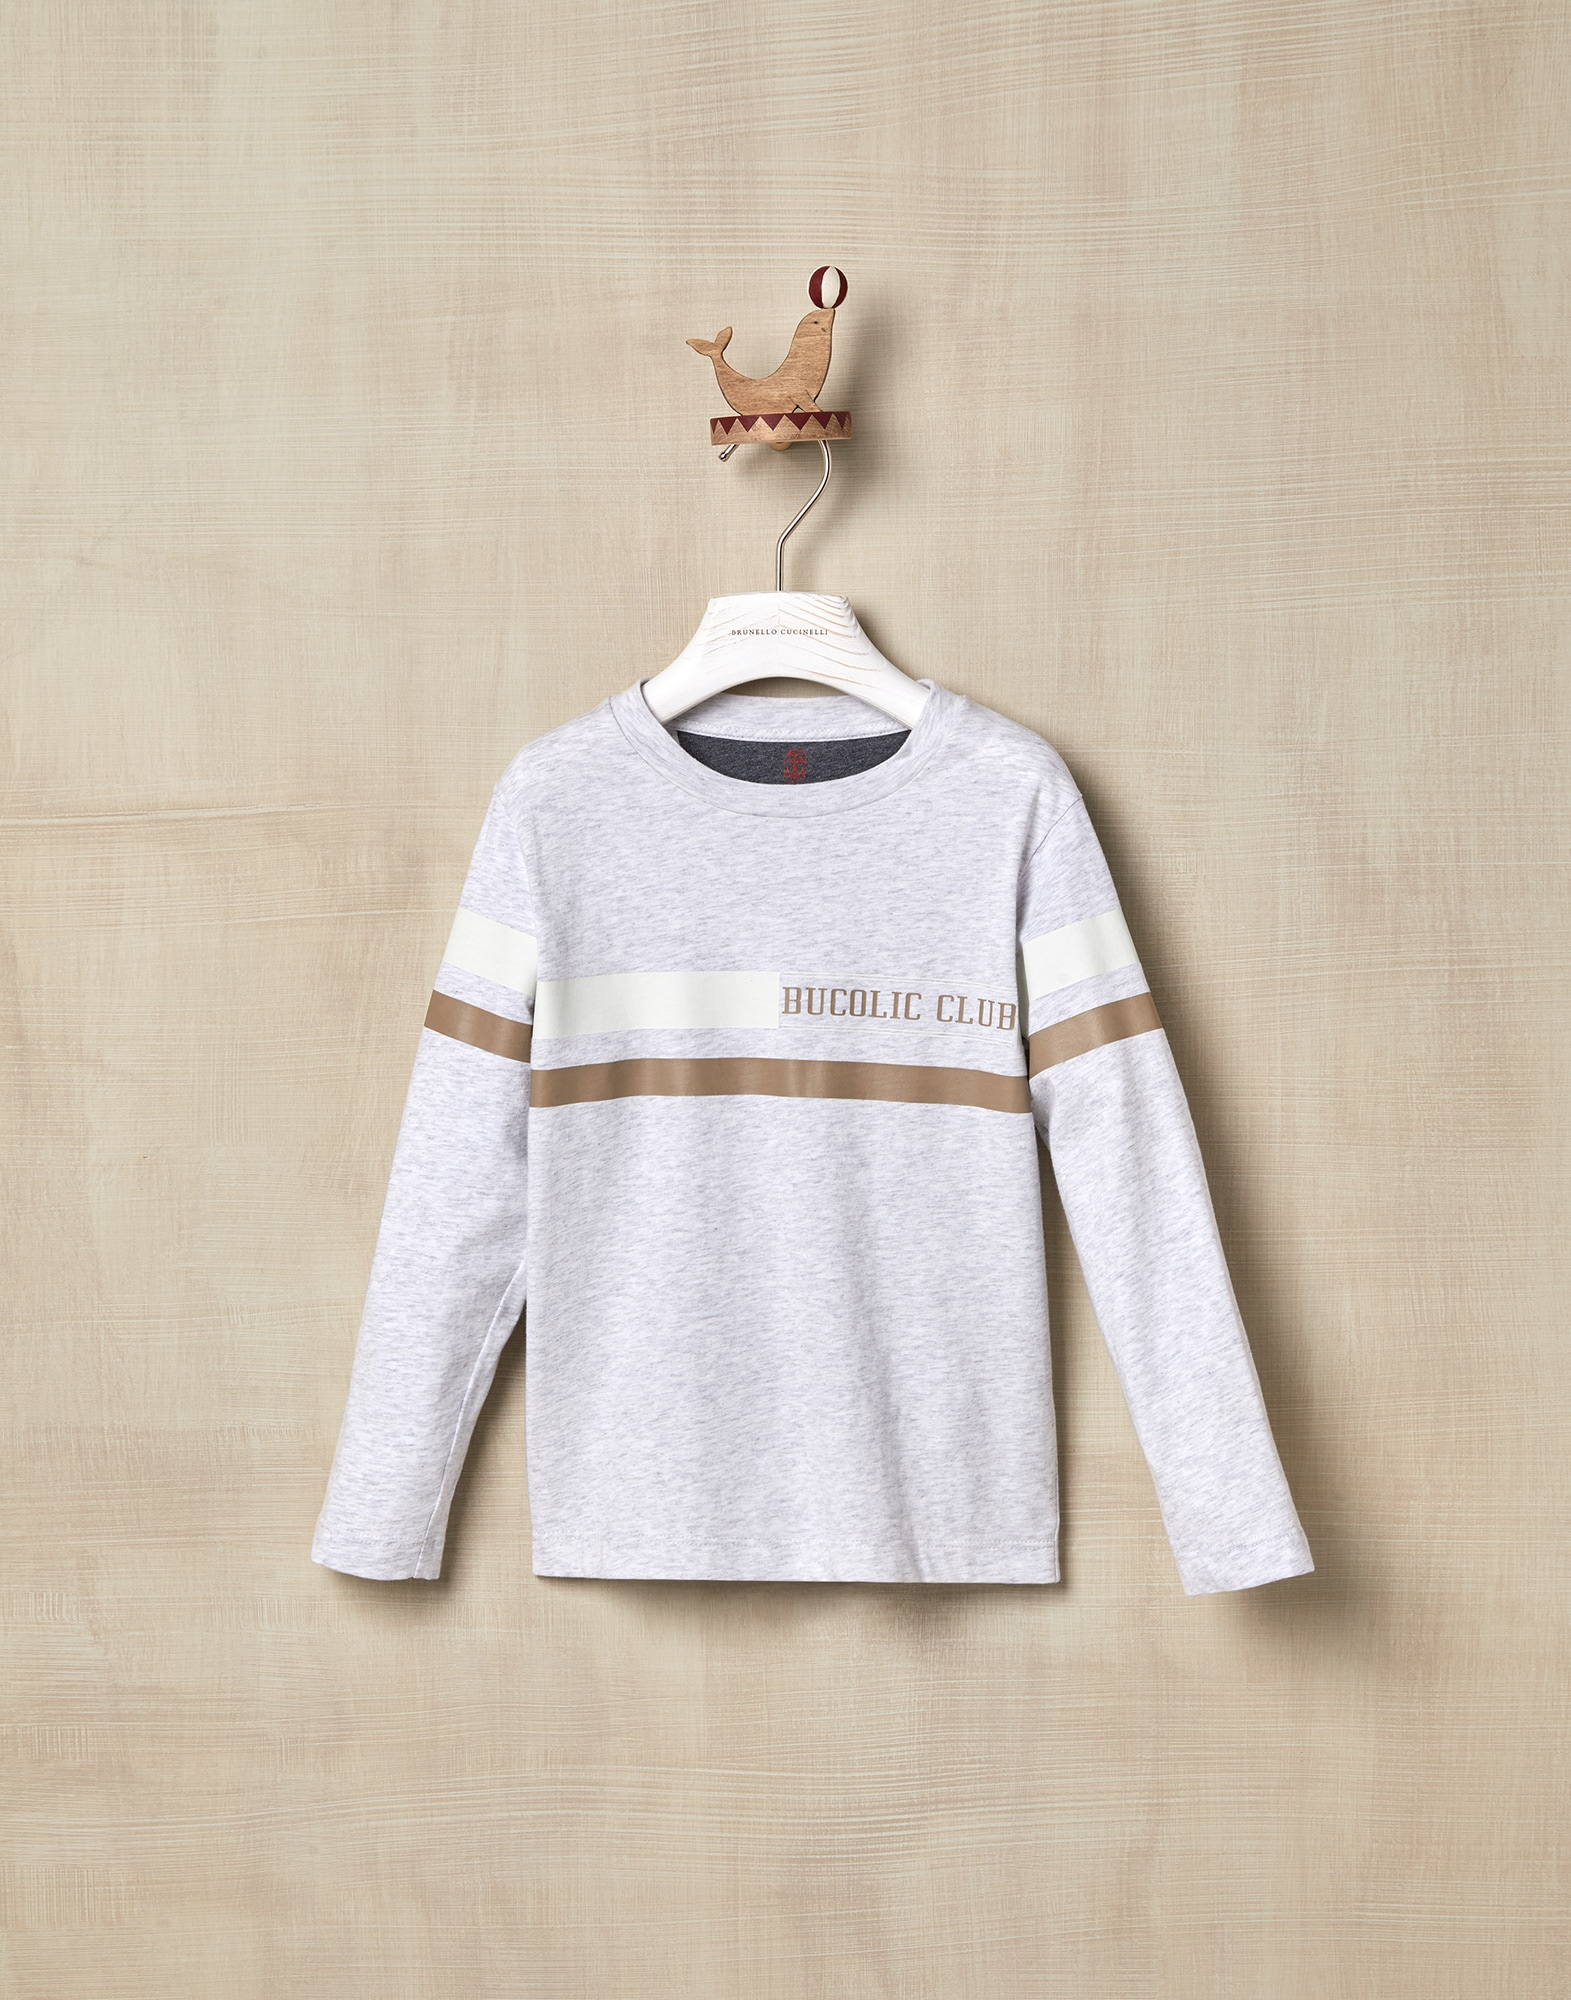 T-Shirt Pearl Grey Boy 0 - Brunello Cucinelli